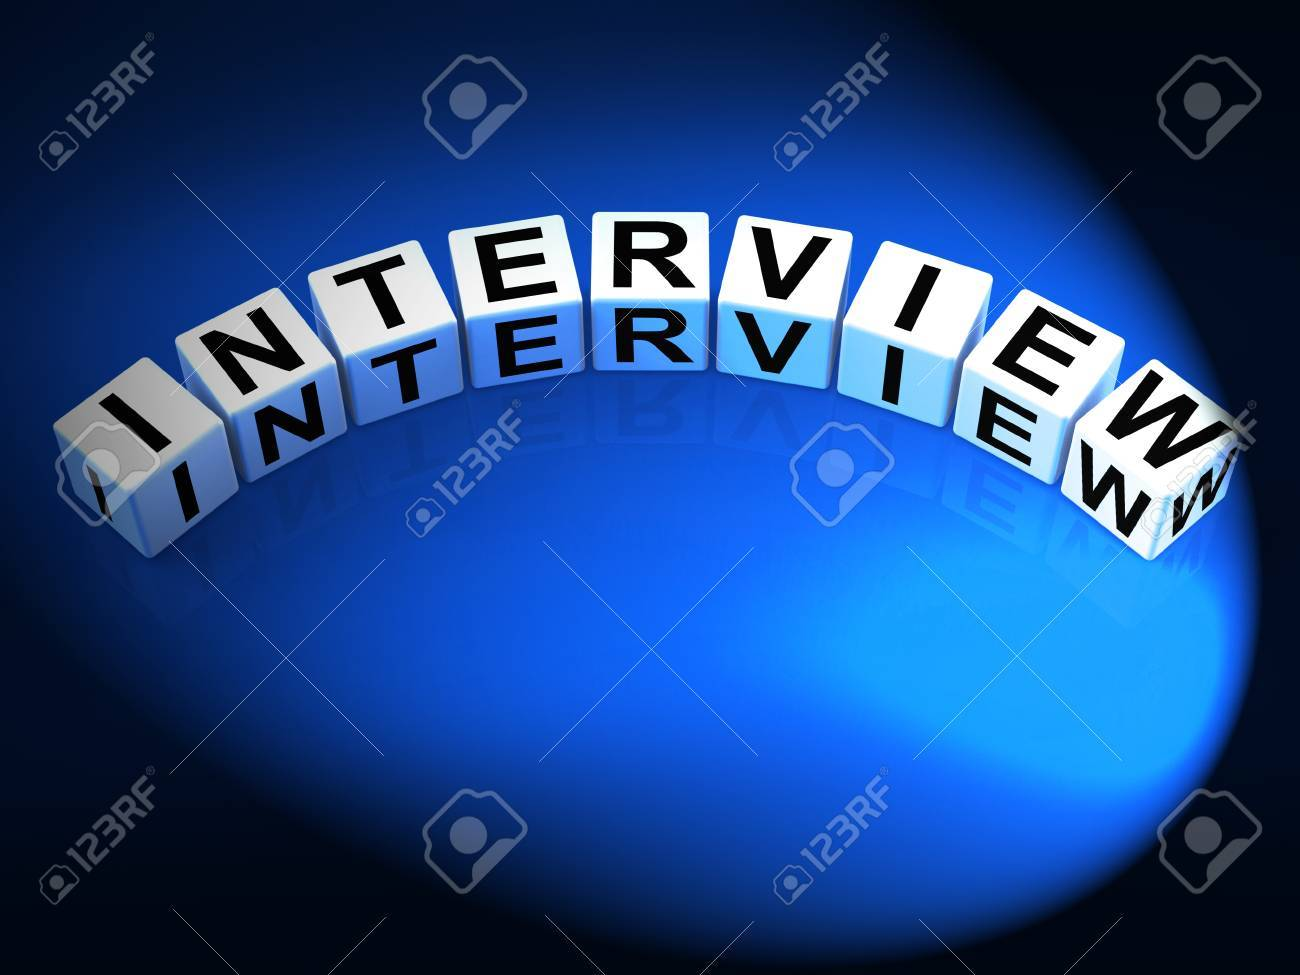 interview dice meaning conversation or dialogue when interviewing interview dice meaning conversation or dialogue when interviewing stock photo 28844752